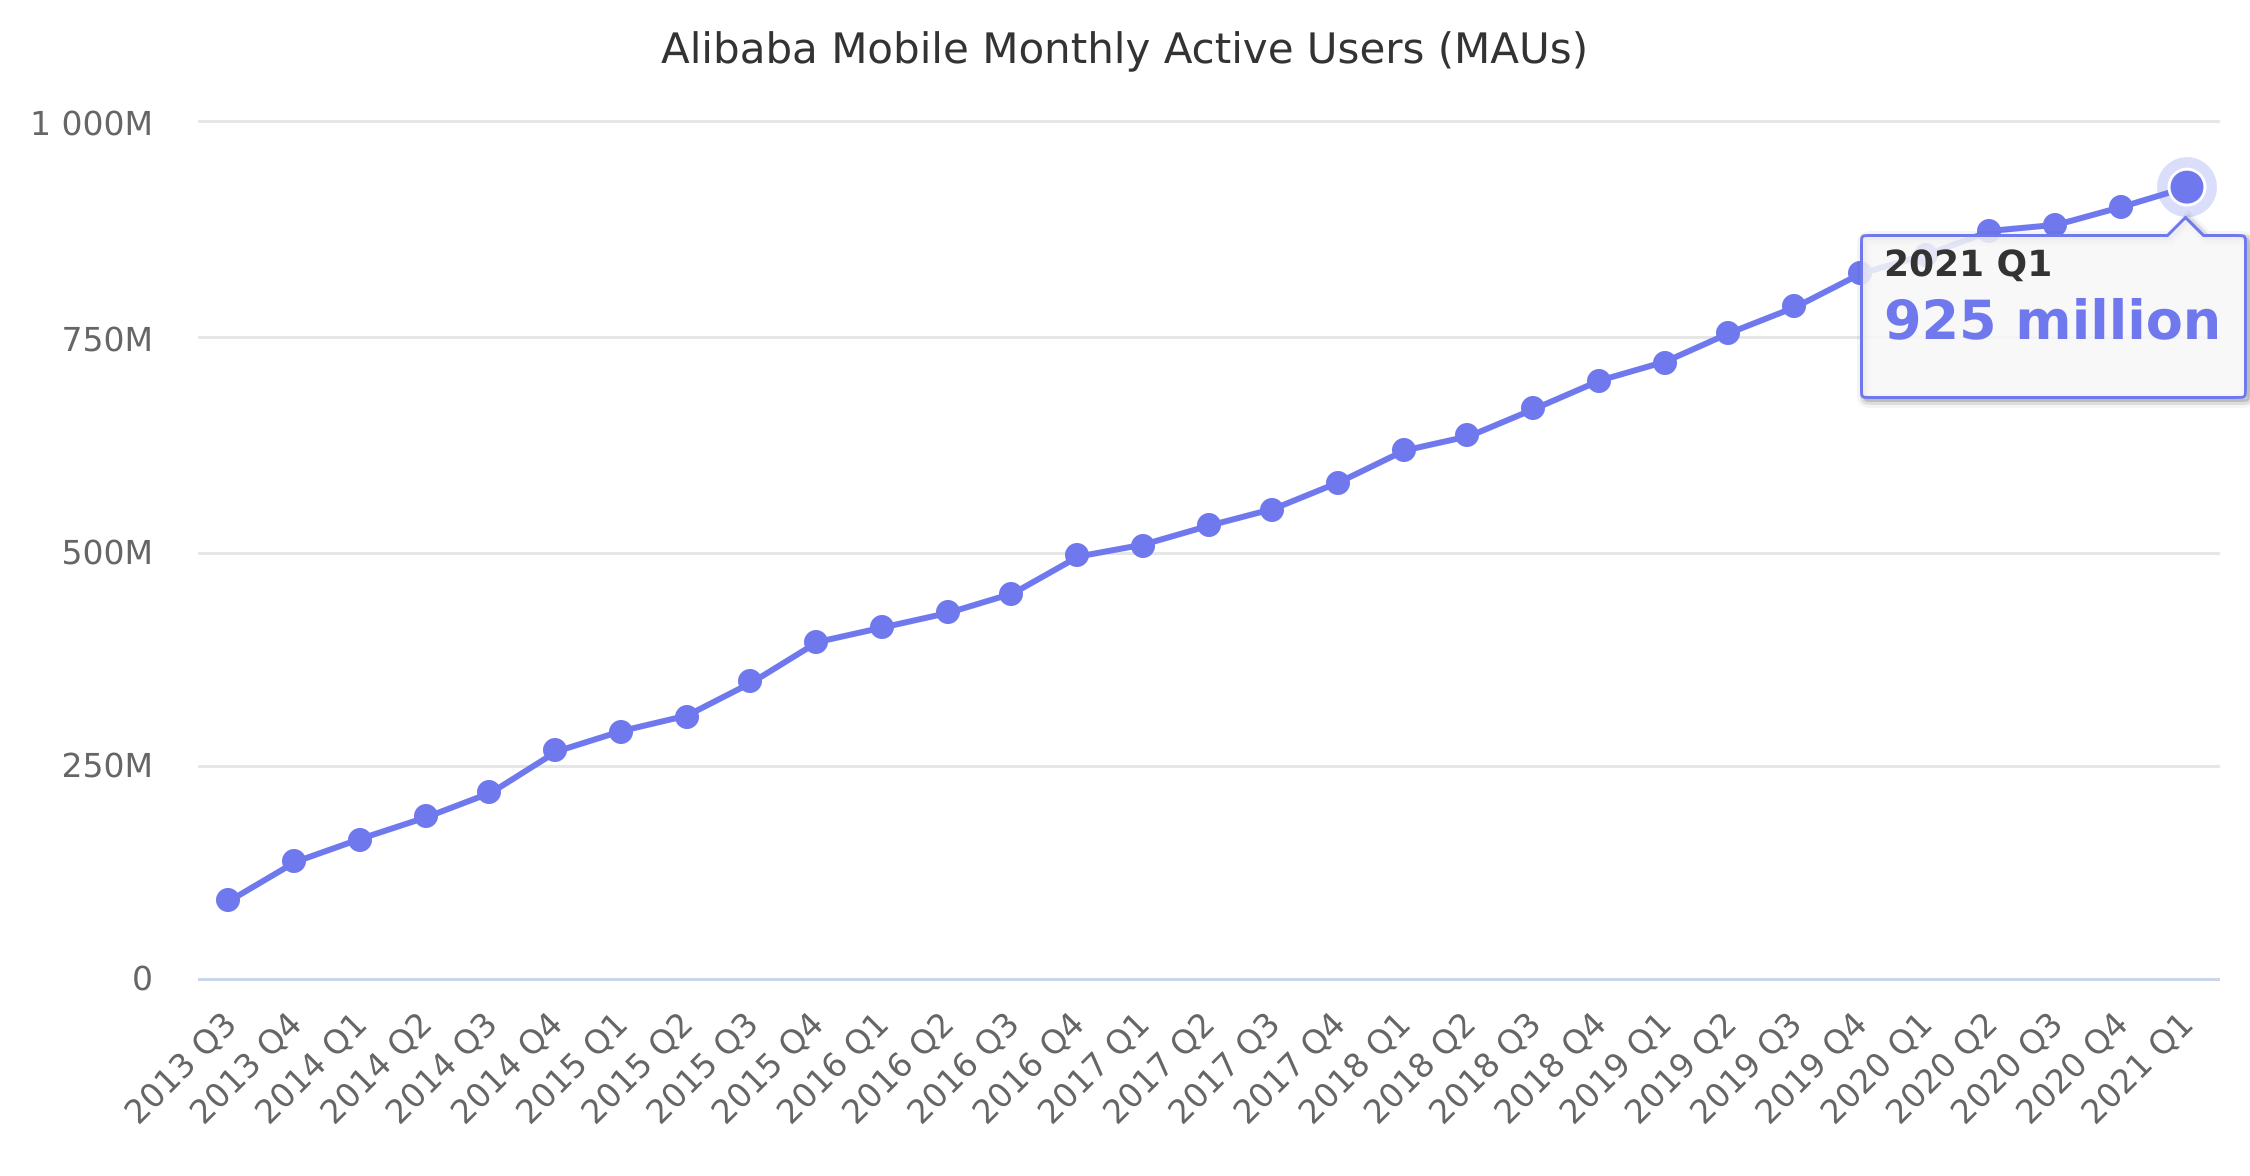 Alibaba Mobile Monthly Active Users (MAUs) 2013-2017